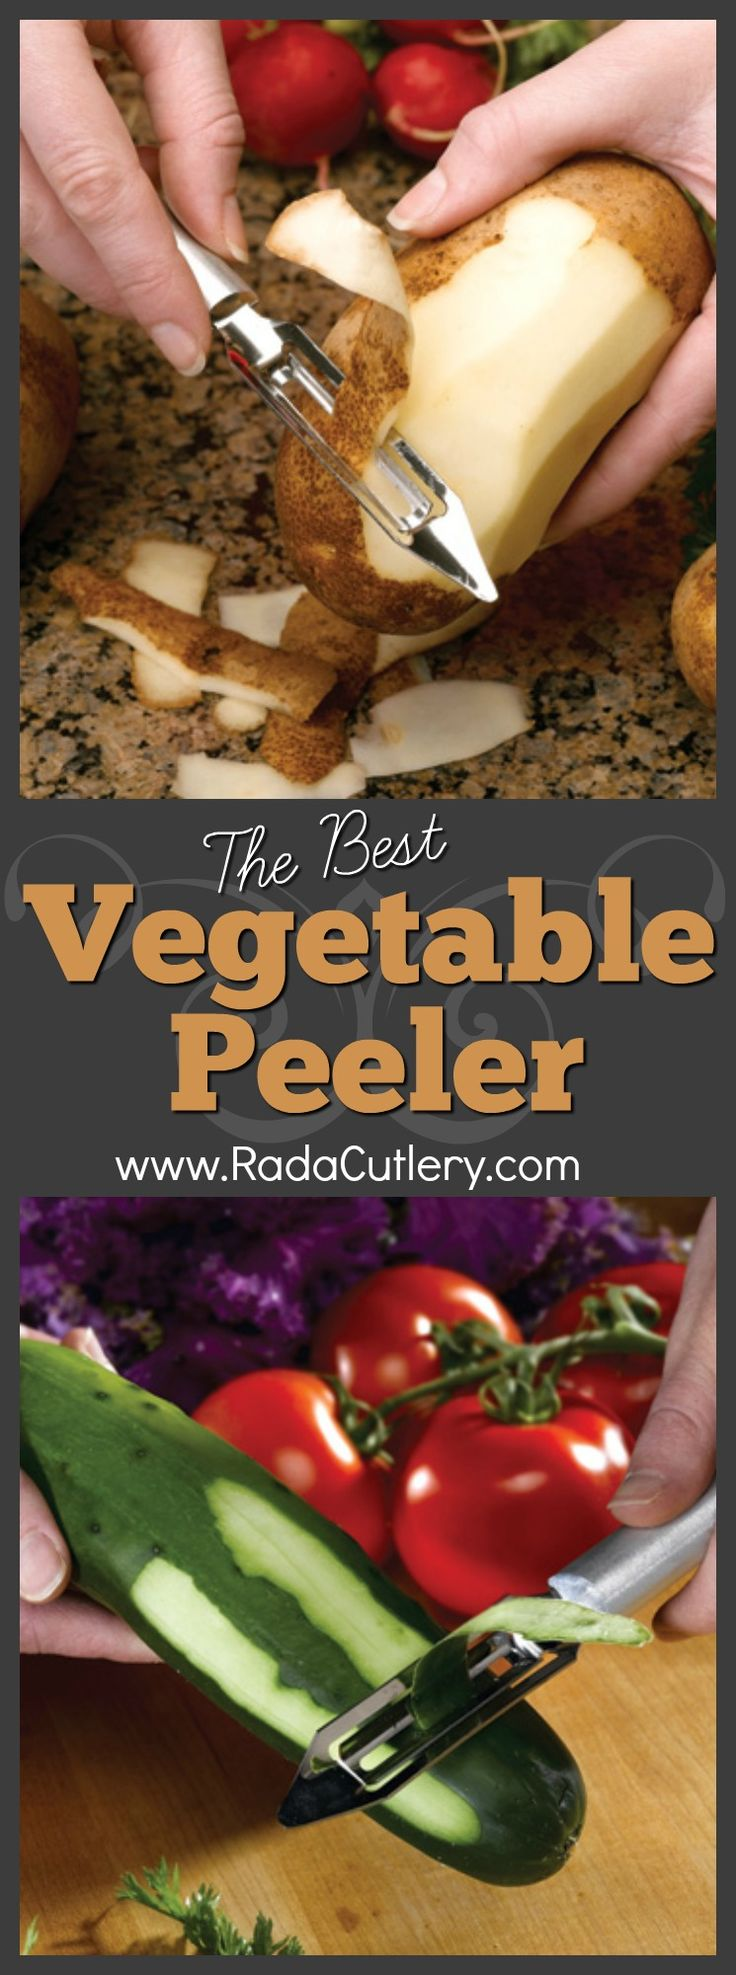 The Rada Cutlery Vegetable Peeler is one of our most popular and celebrated products, and with good reason.   This invaluable tool is the best vegetable peeler you can find.    This stainless steel vegetable peeler features a surgical-quality, high-carbon blade for easy peeling of a wide variety of vegetables, including carrots, cucumbers, or potatoes. Don't let the name fool you, though, as it's equally useful at peeling fruits such as apples or peaches. It's also useful for making…